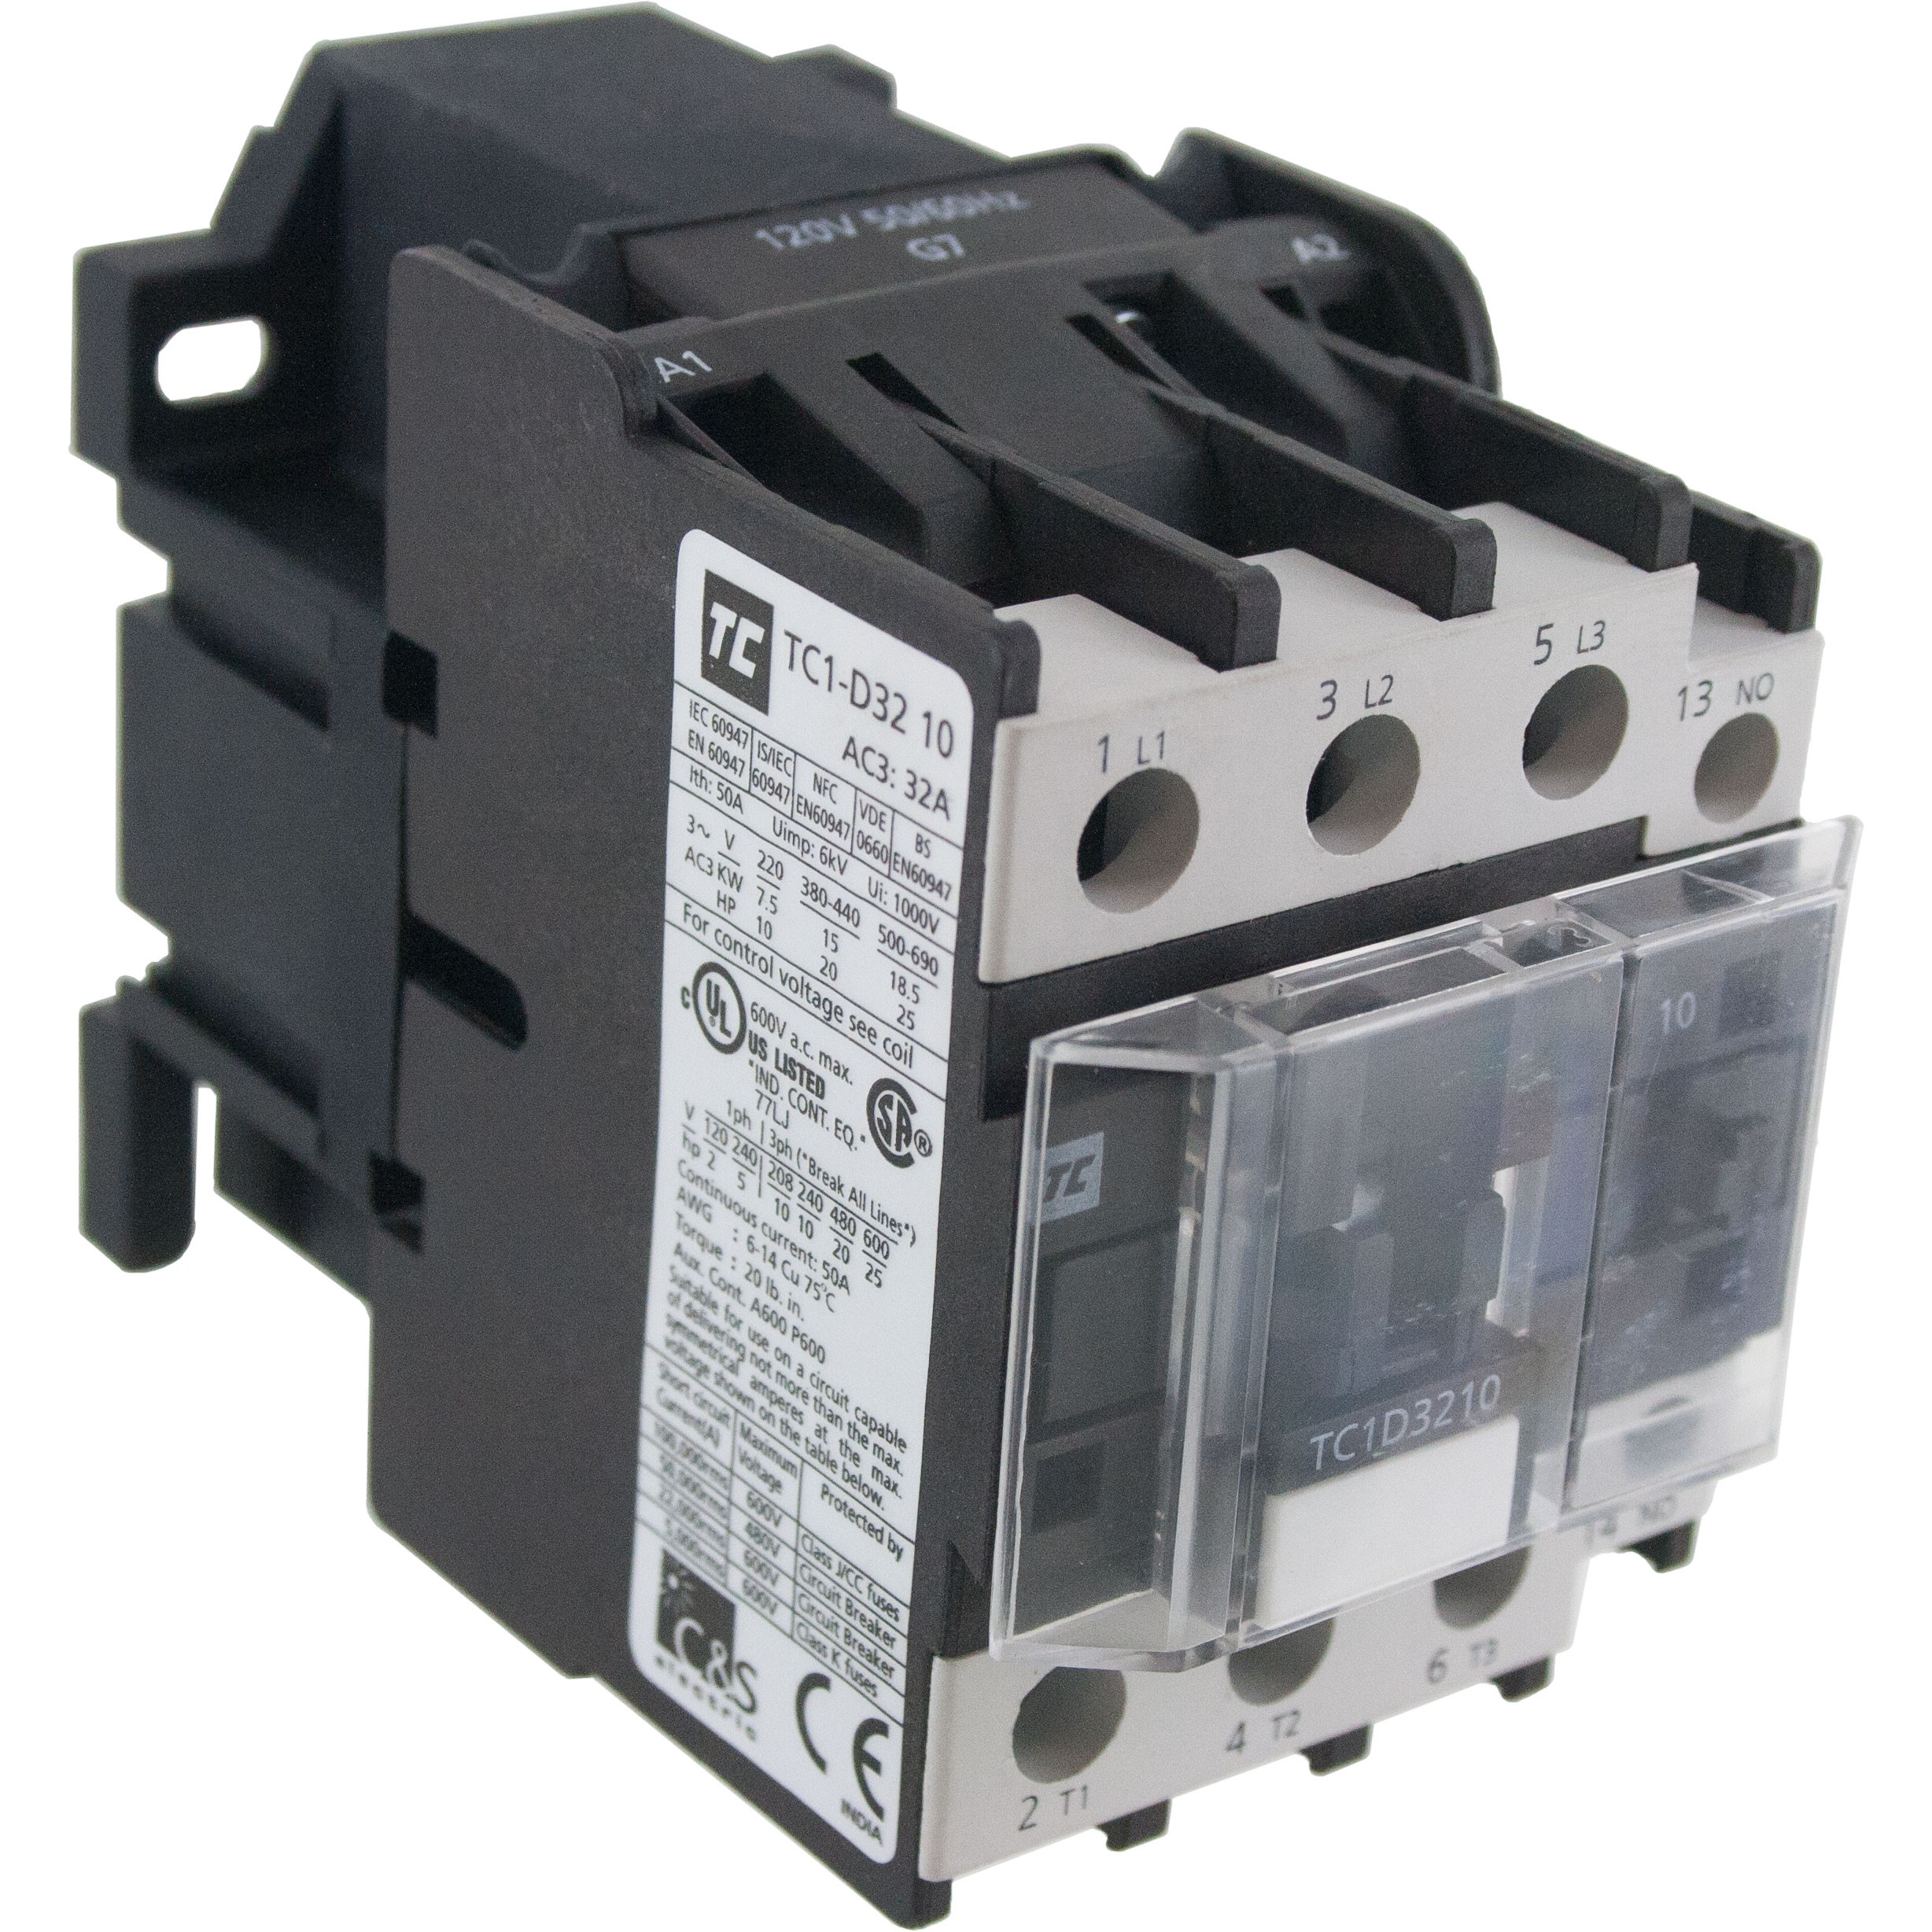 3 Pole Contactor 32 Amp 1 N/O 240 Volt AC Coil Angle